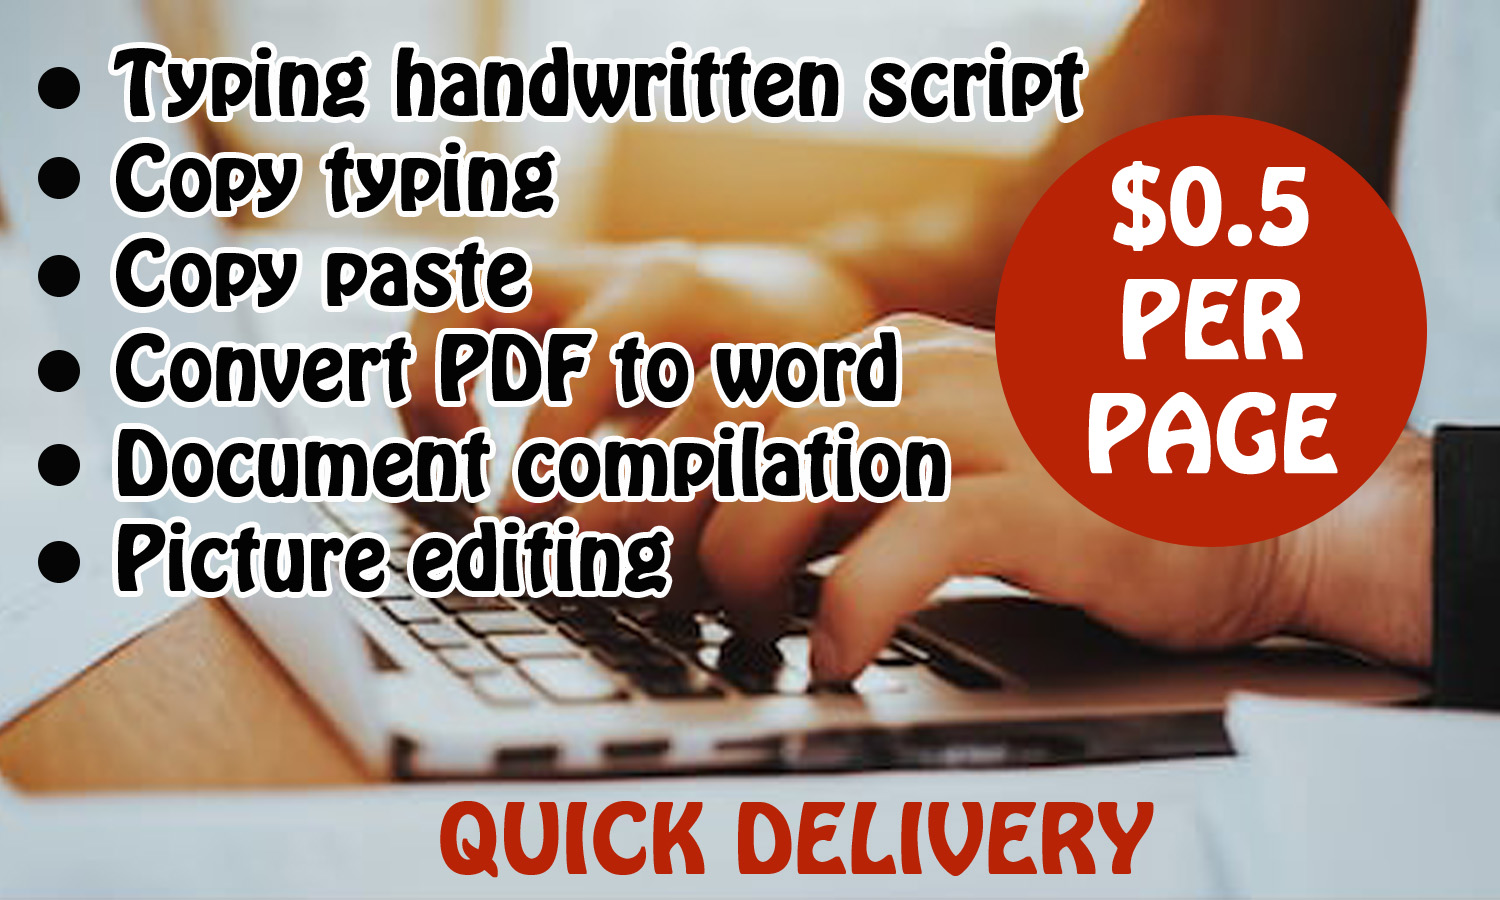 Fast and accurate typing service, create editable PDF, convert PDF or picture text to word